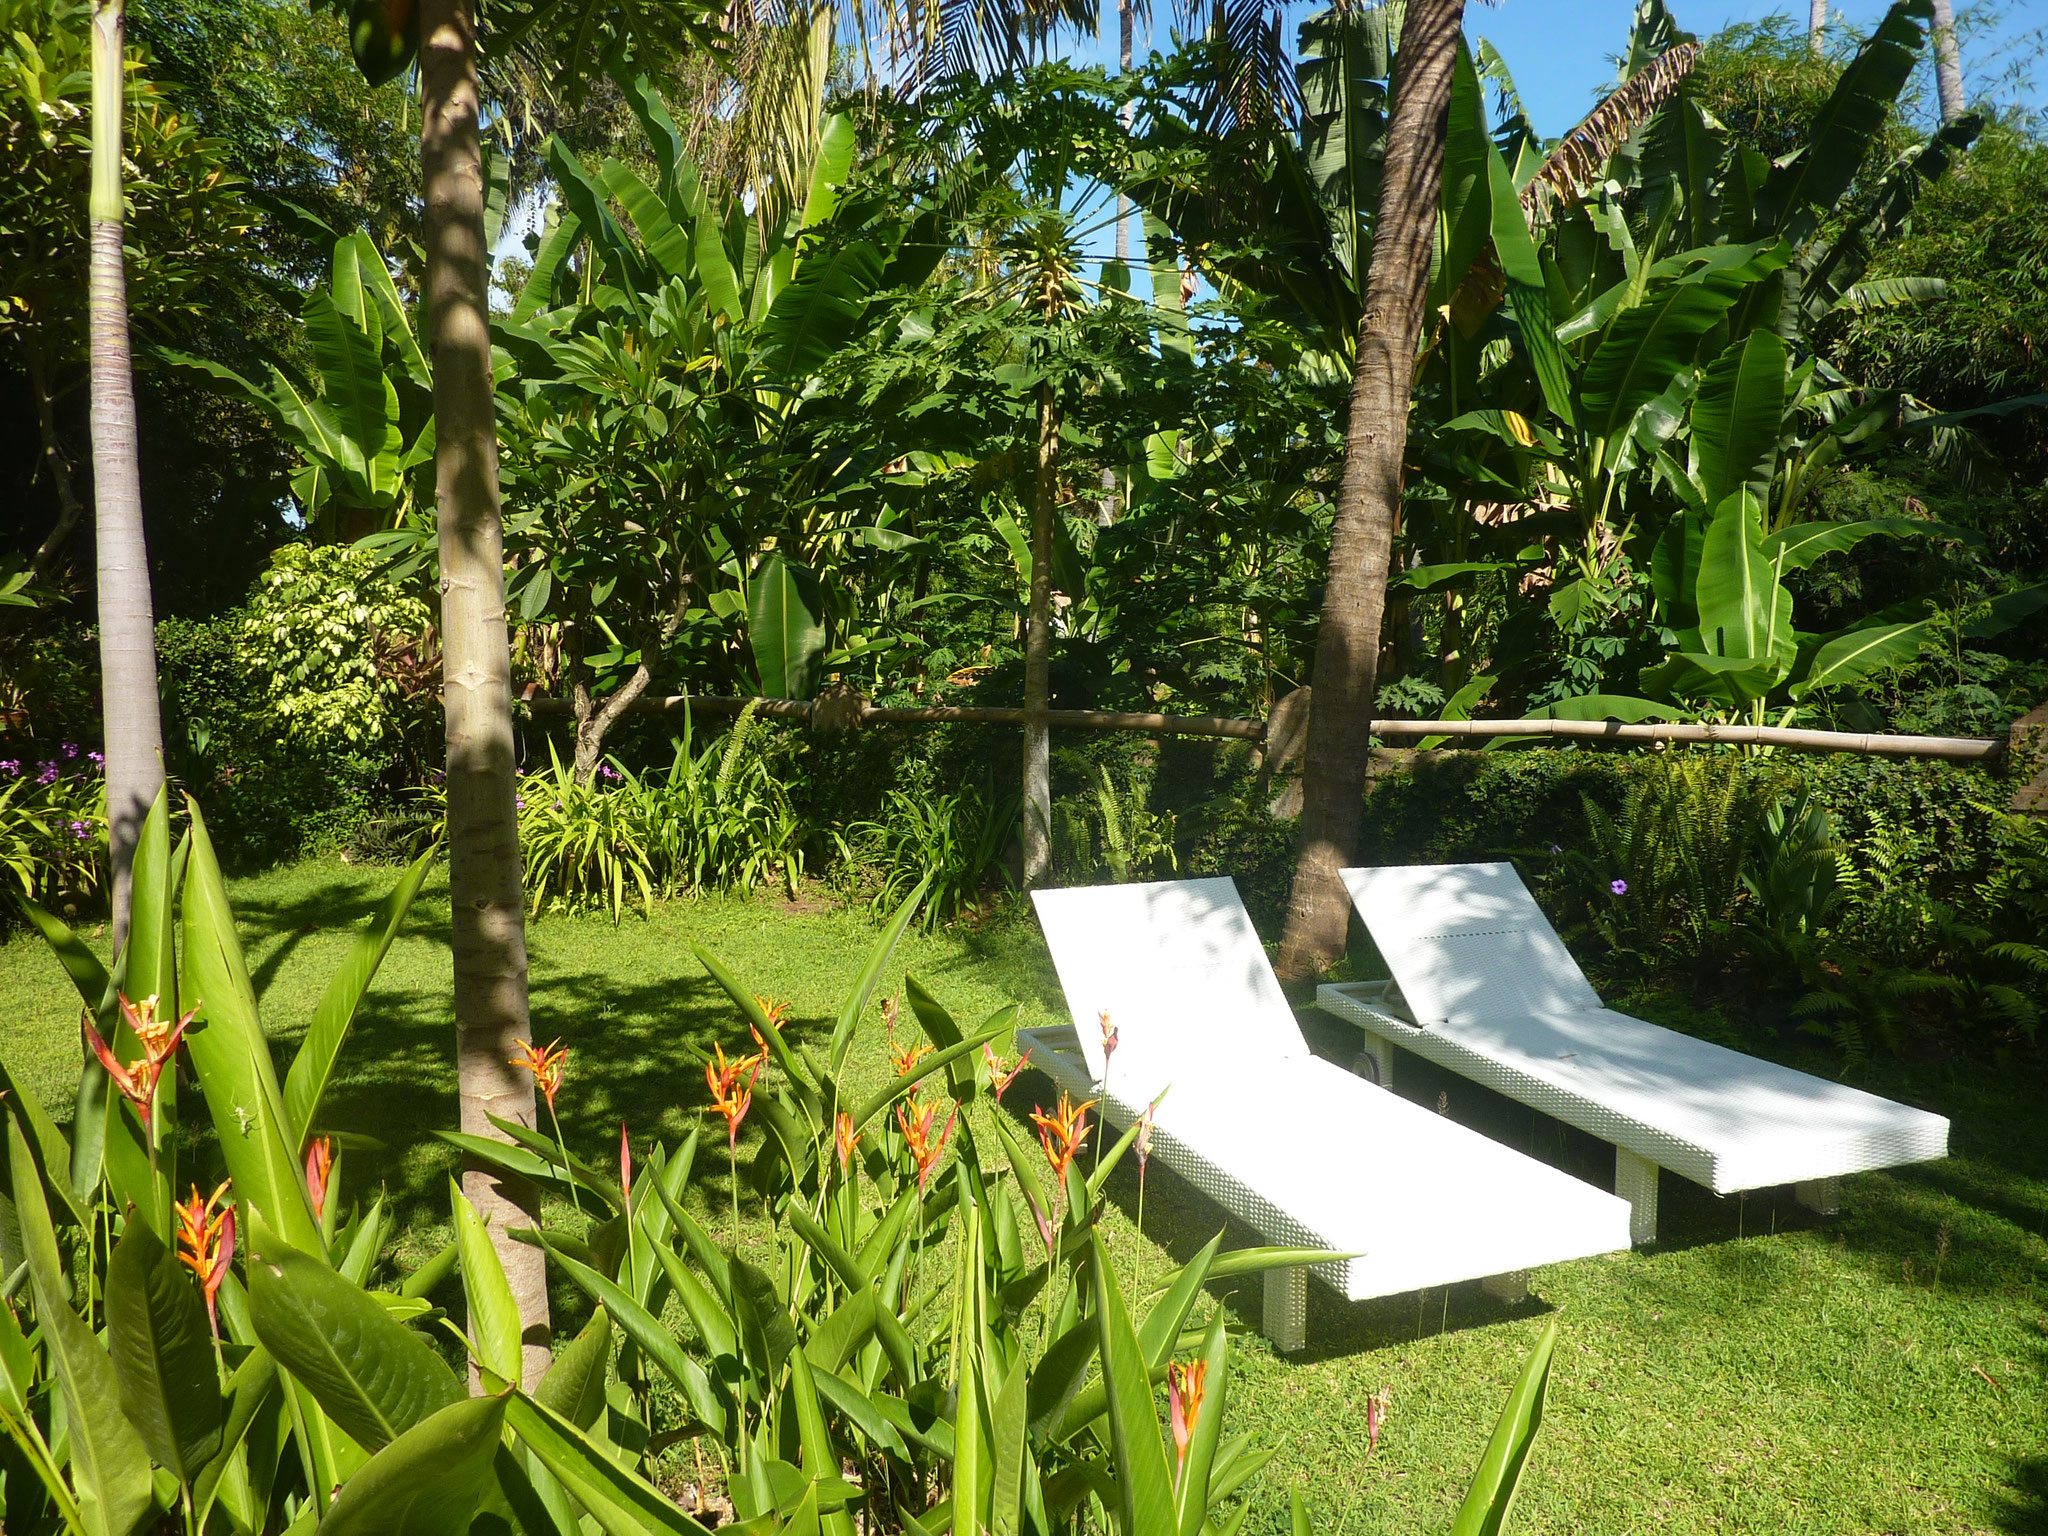 The garden in front of the small bungalow